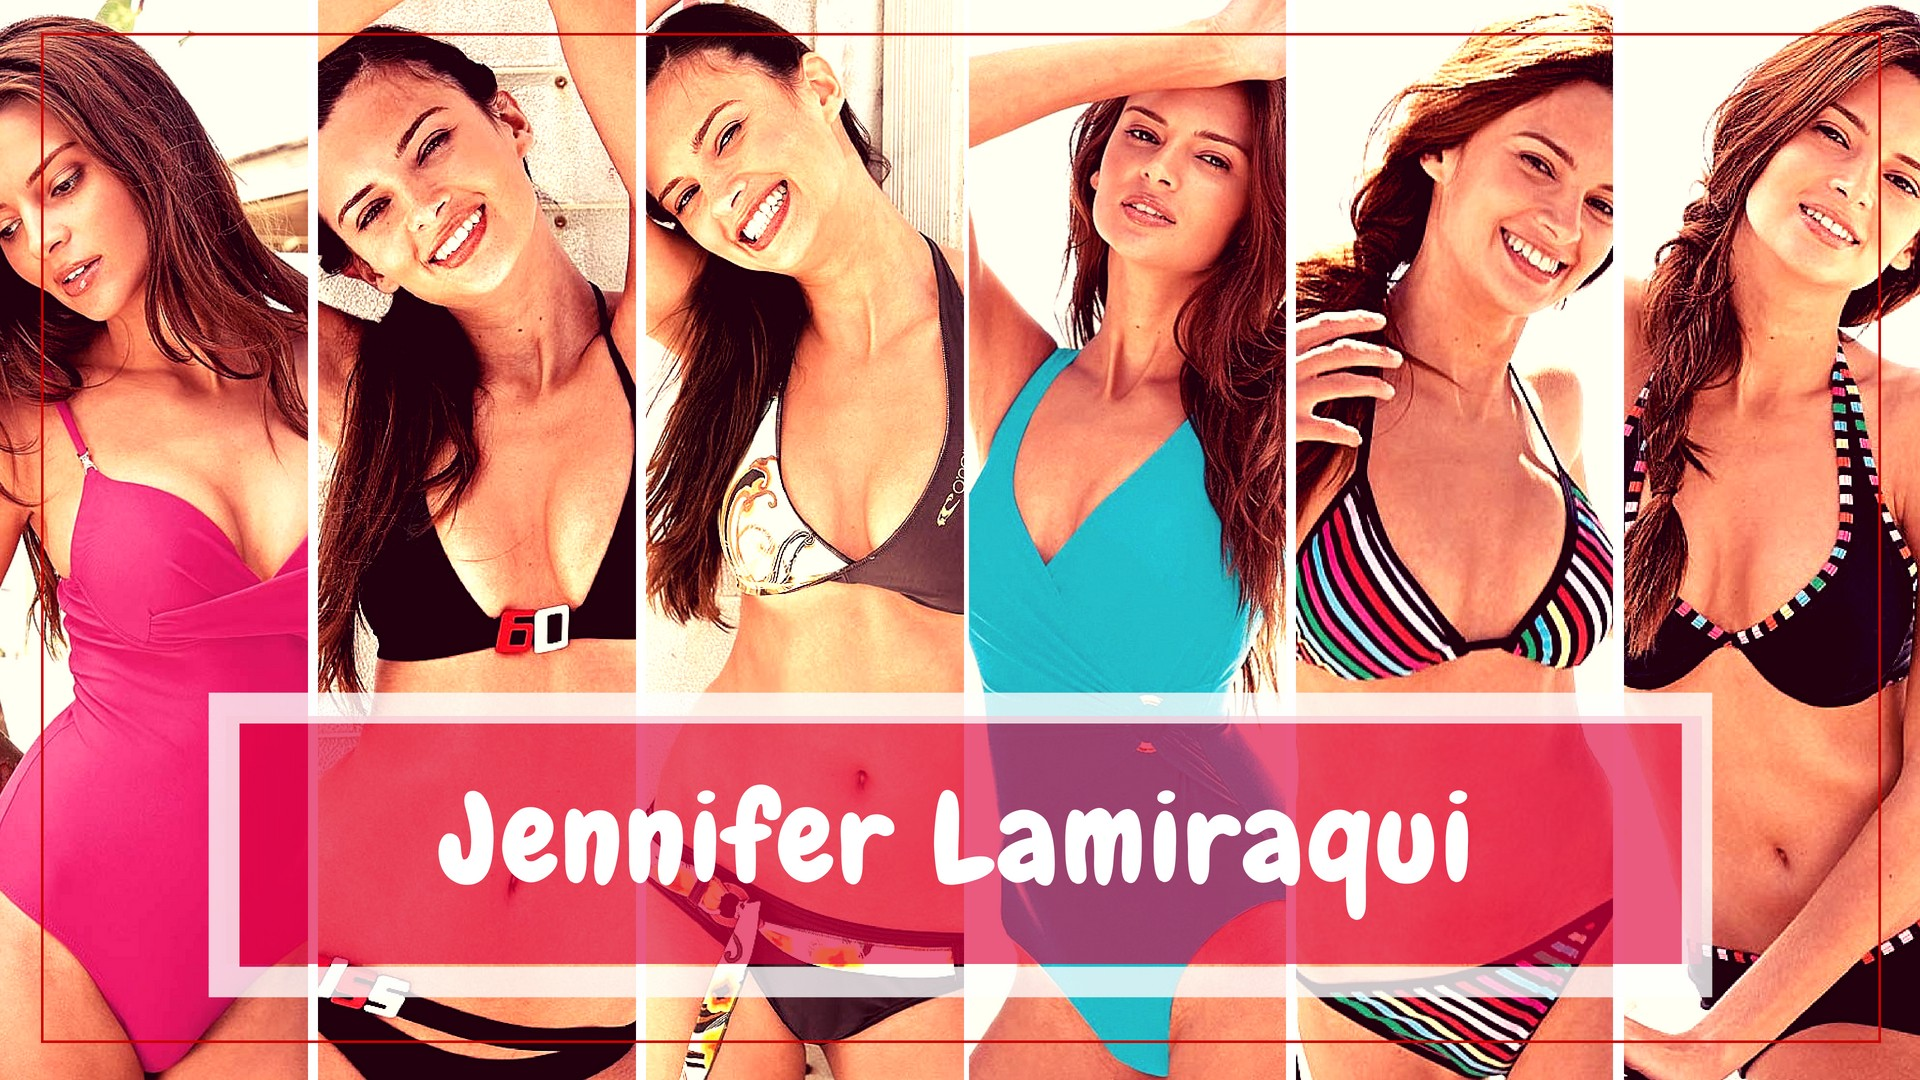 Jennifer Lamiraqui Sexy Swimwear Collection - Sexy Actress Pictures | Hot Actress Pictures - ActressSnaps.com